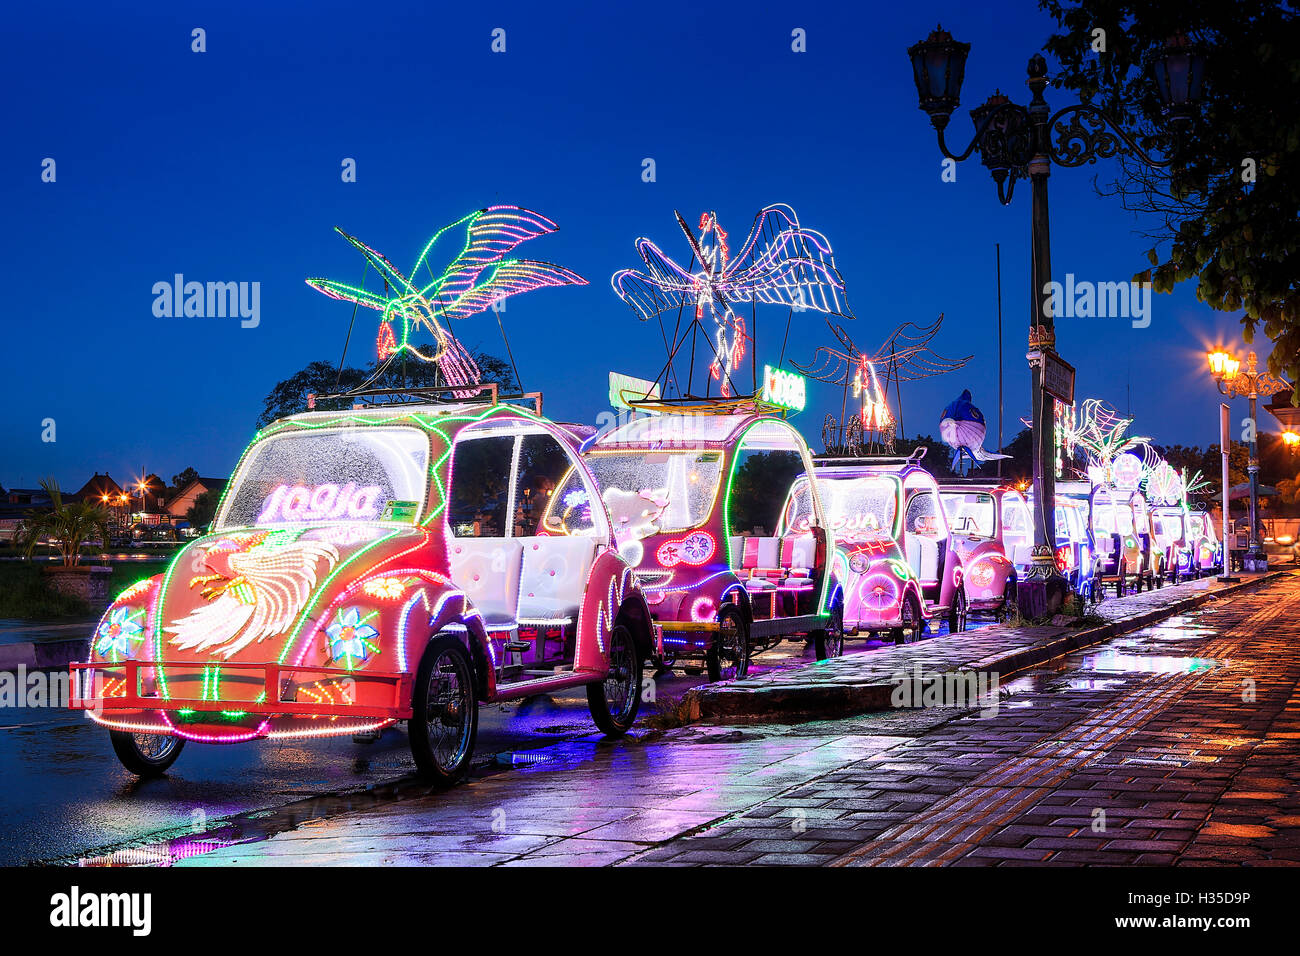 Brightly coloured illuminated pedal cars in yogyakarta city java brightly coloured illuminated pedal cars in yogyakarta city java indonesia stopboris Choice Image